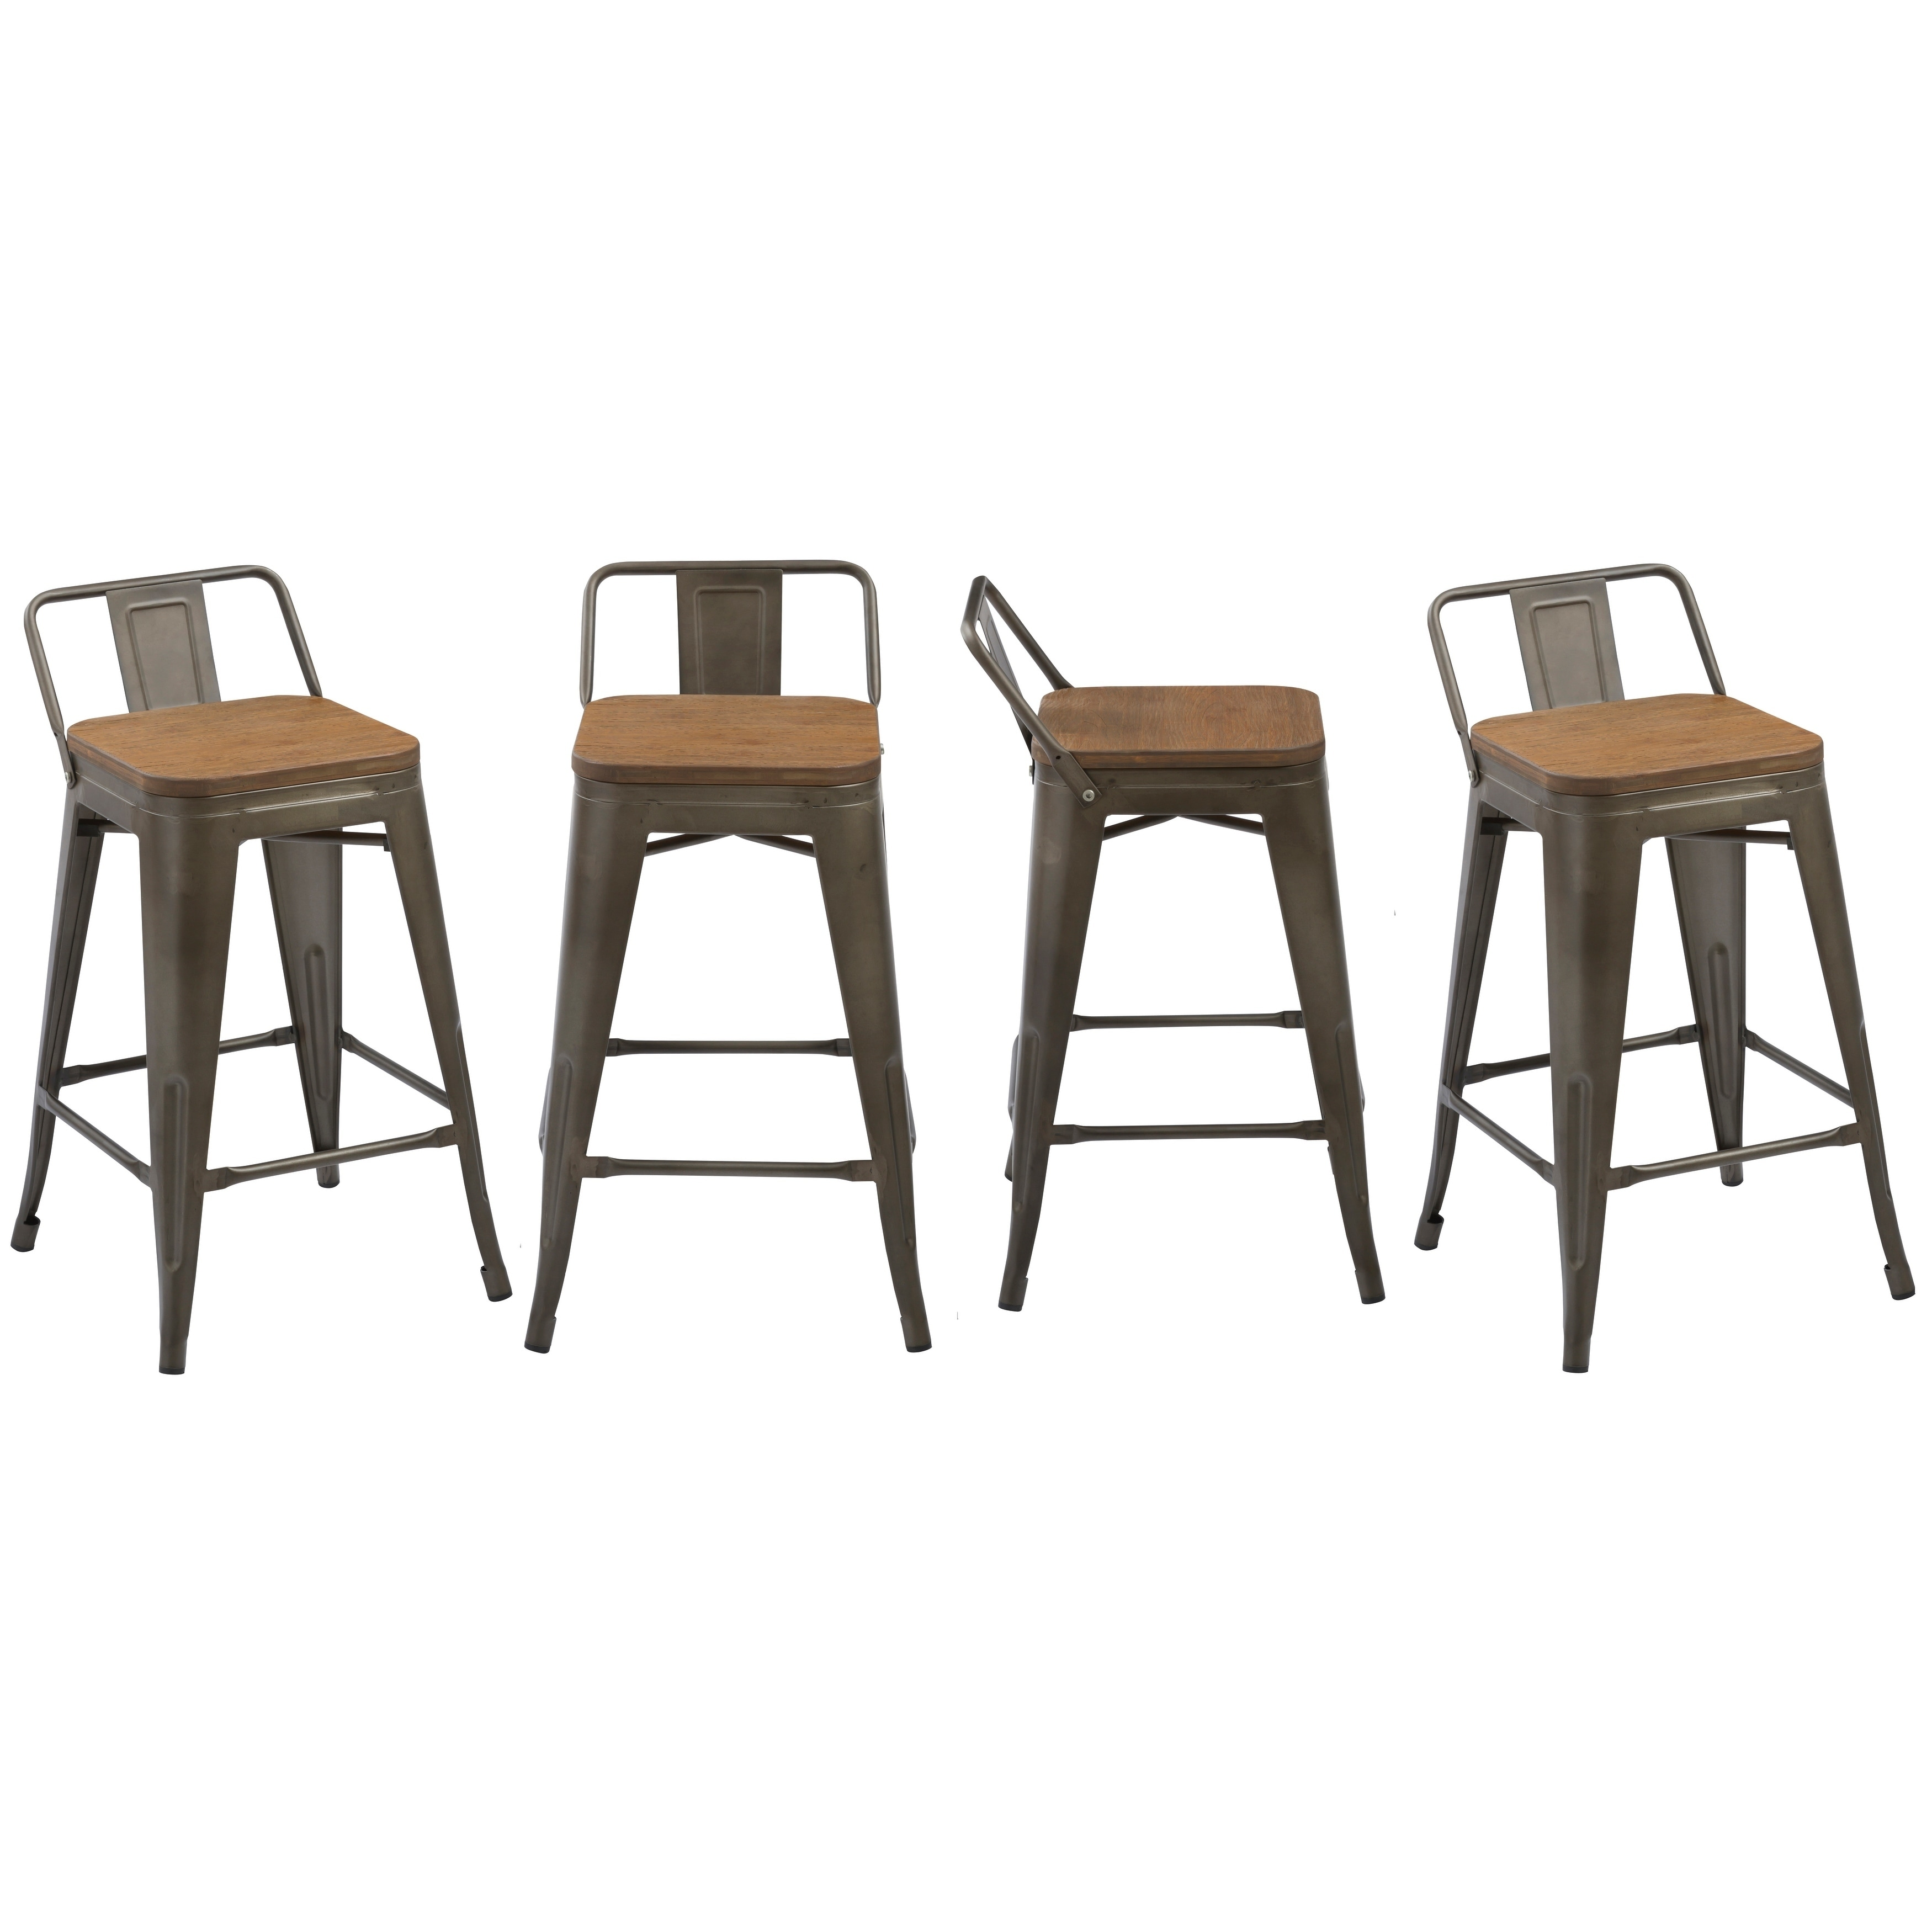 Enjoyable Industrial 24 Rustic Metal Wood Indoor Outdoor Counter Bar Stool Set Of 4 Pdpeps Interior Chair Design Pdpepsorg